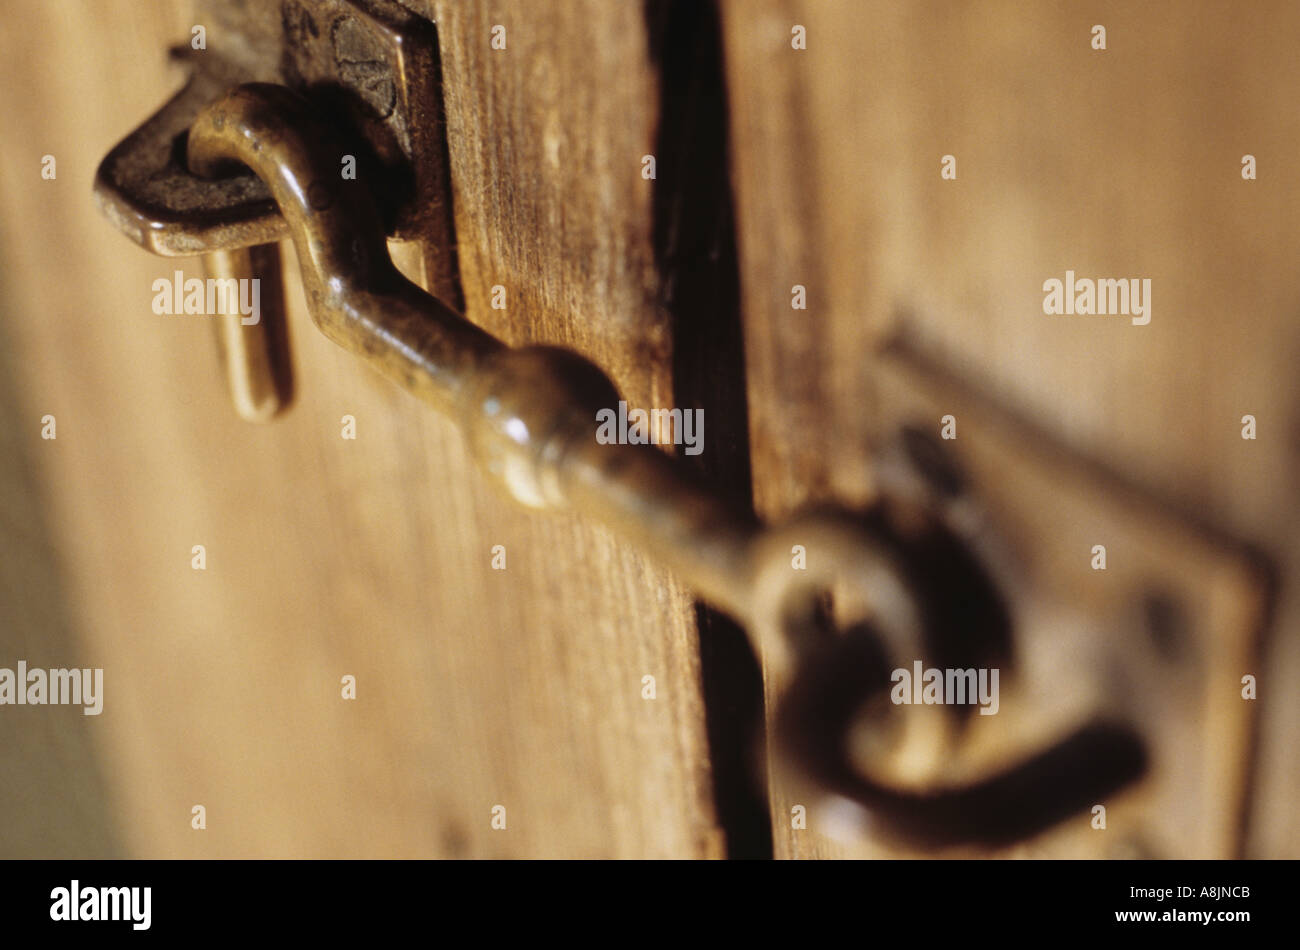 Close up of old latch or hook on wooden door or cabinet Stock ...